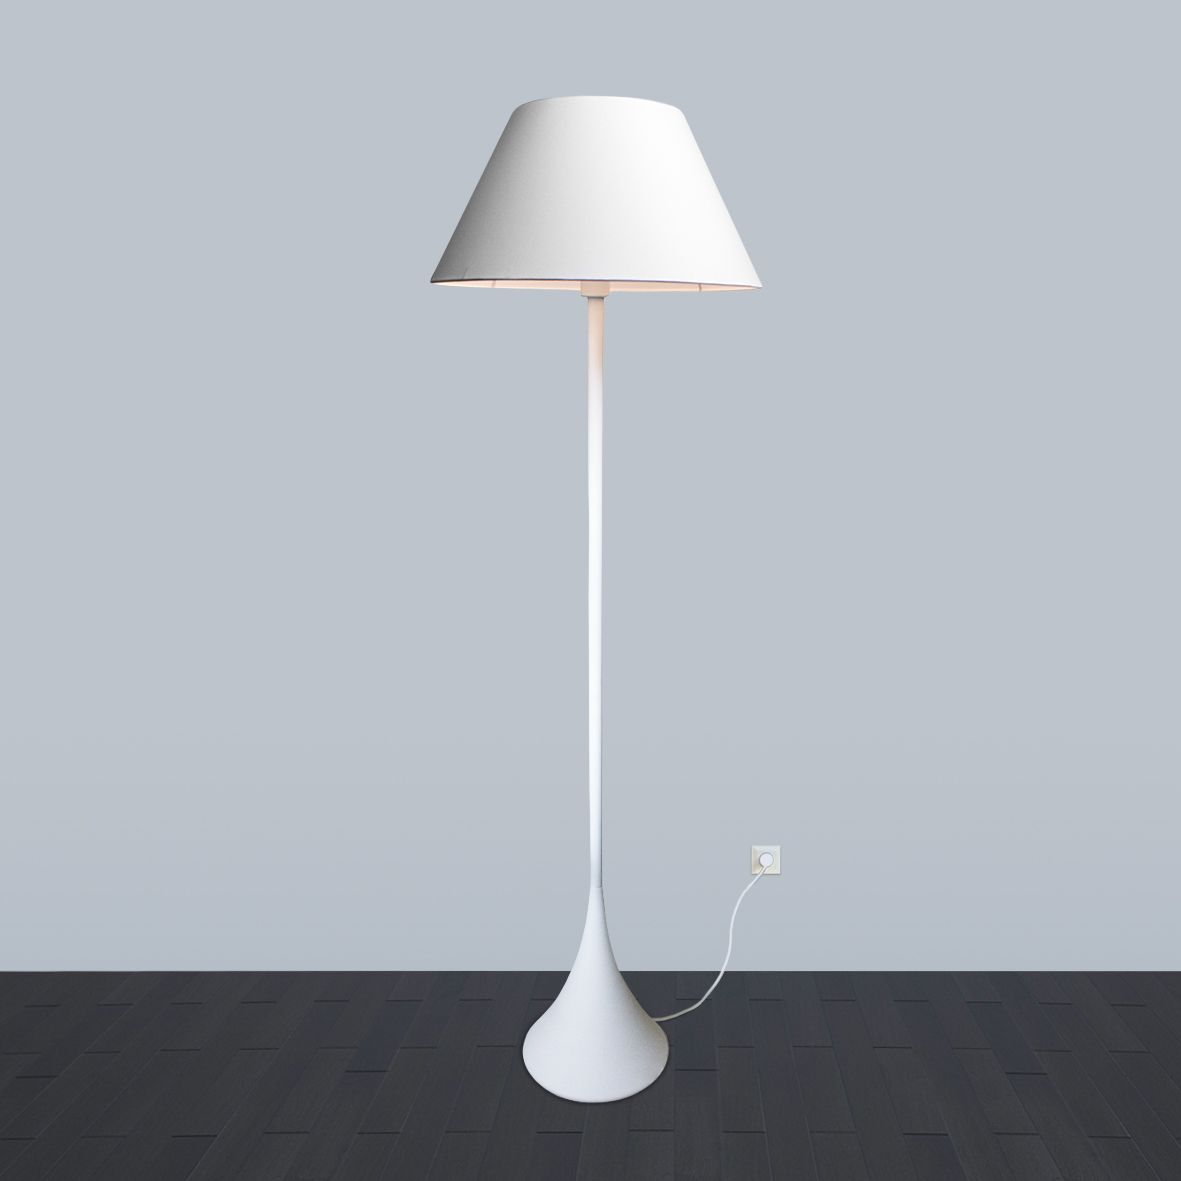 Floor lamp Black and White by  ImperiumLight, white